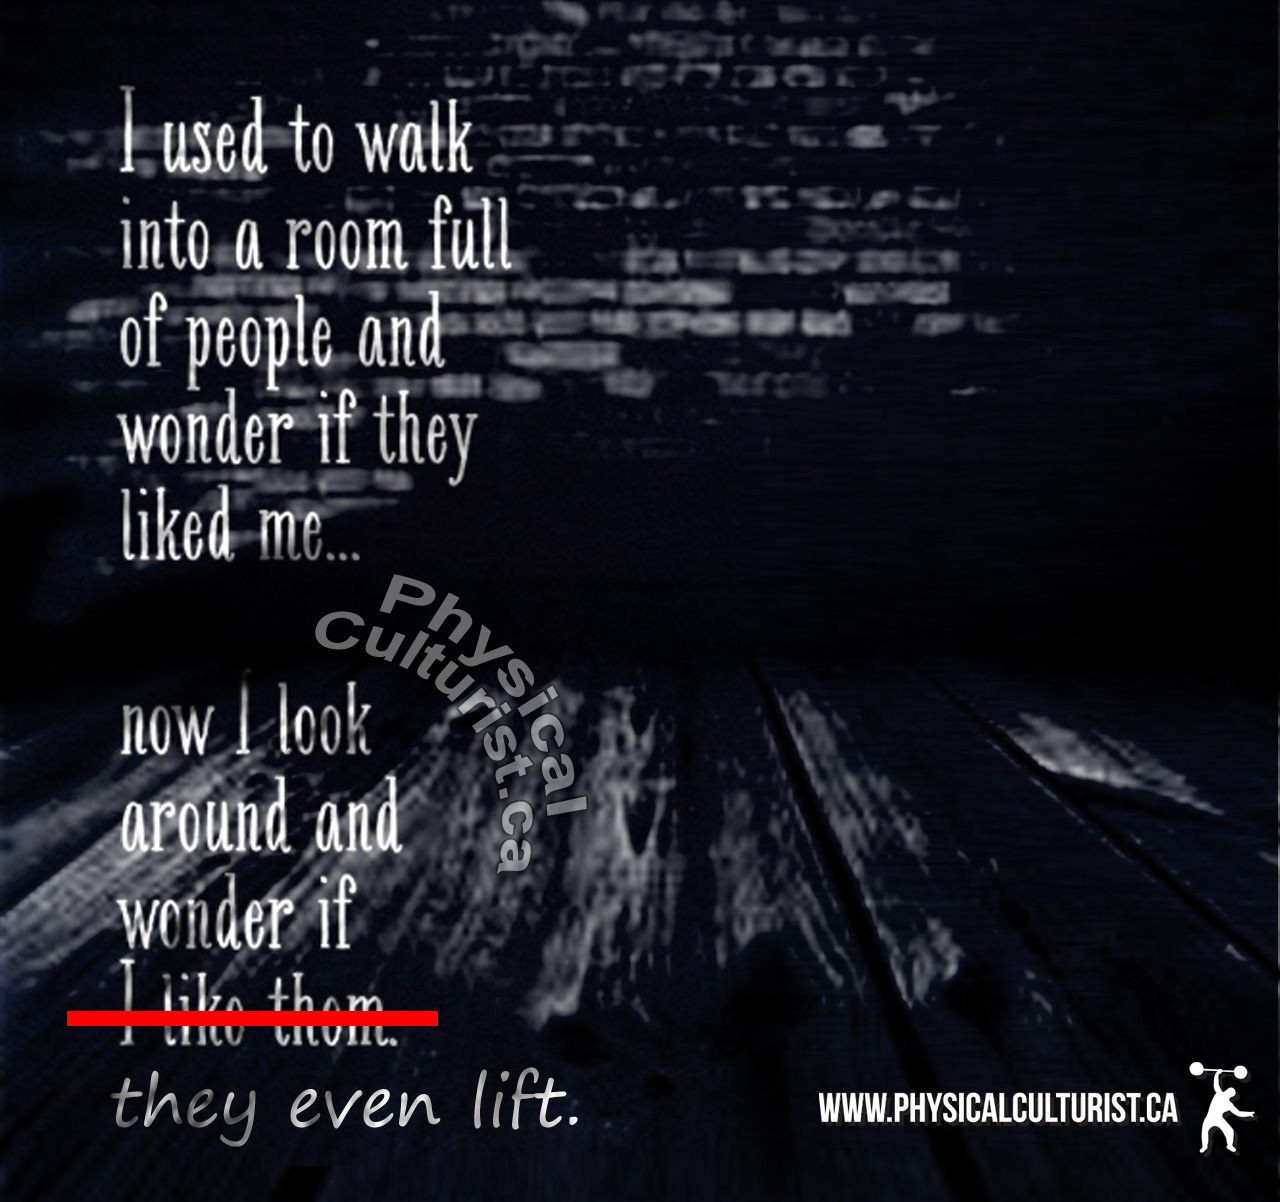 I used to walk into a room full of people and wonder if they liked me... now I look around an wonder if they even lift.